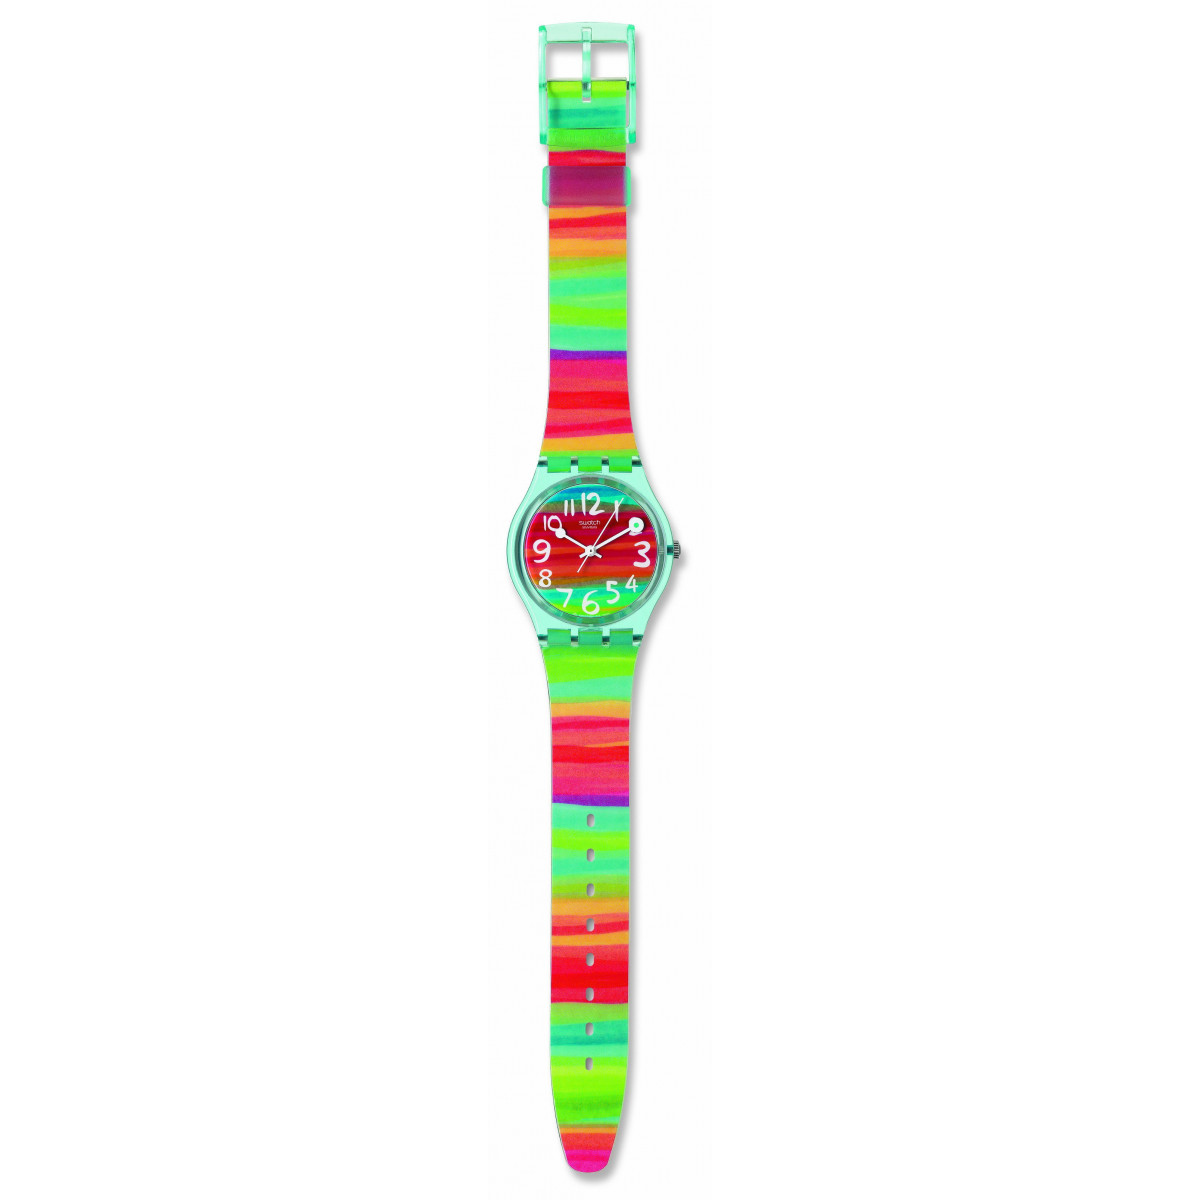 Swatch_GS124_Color The_Sky_outlet_50%